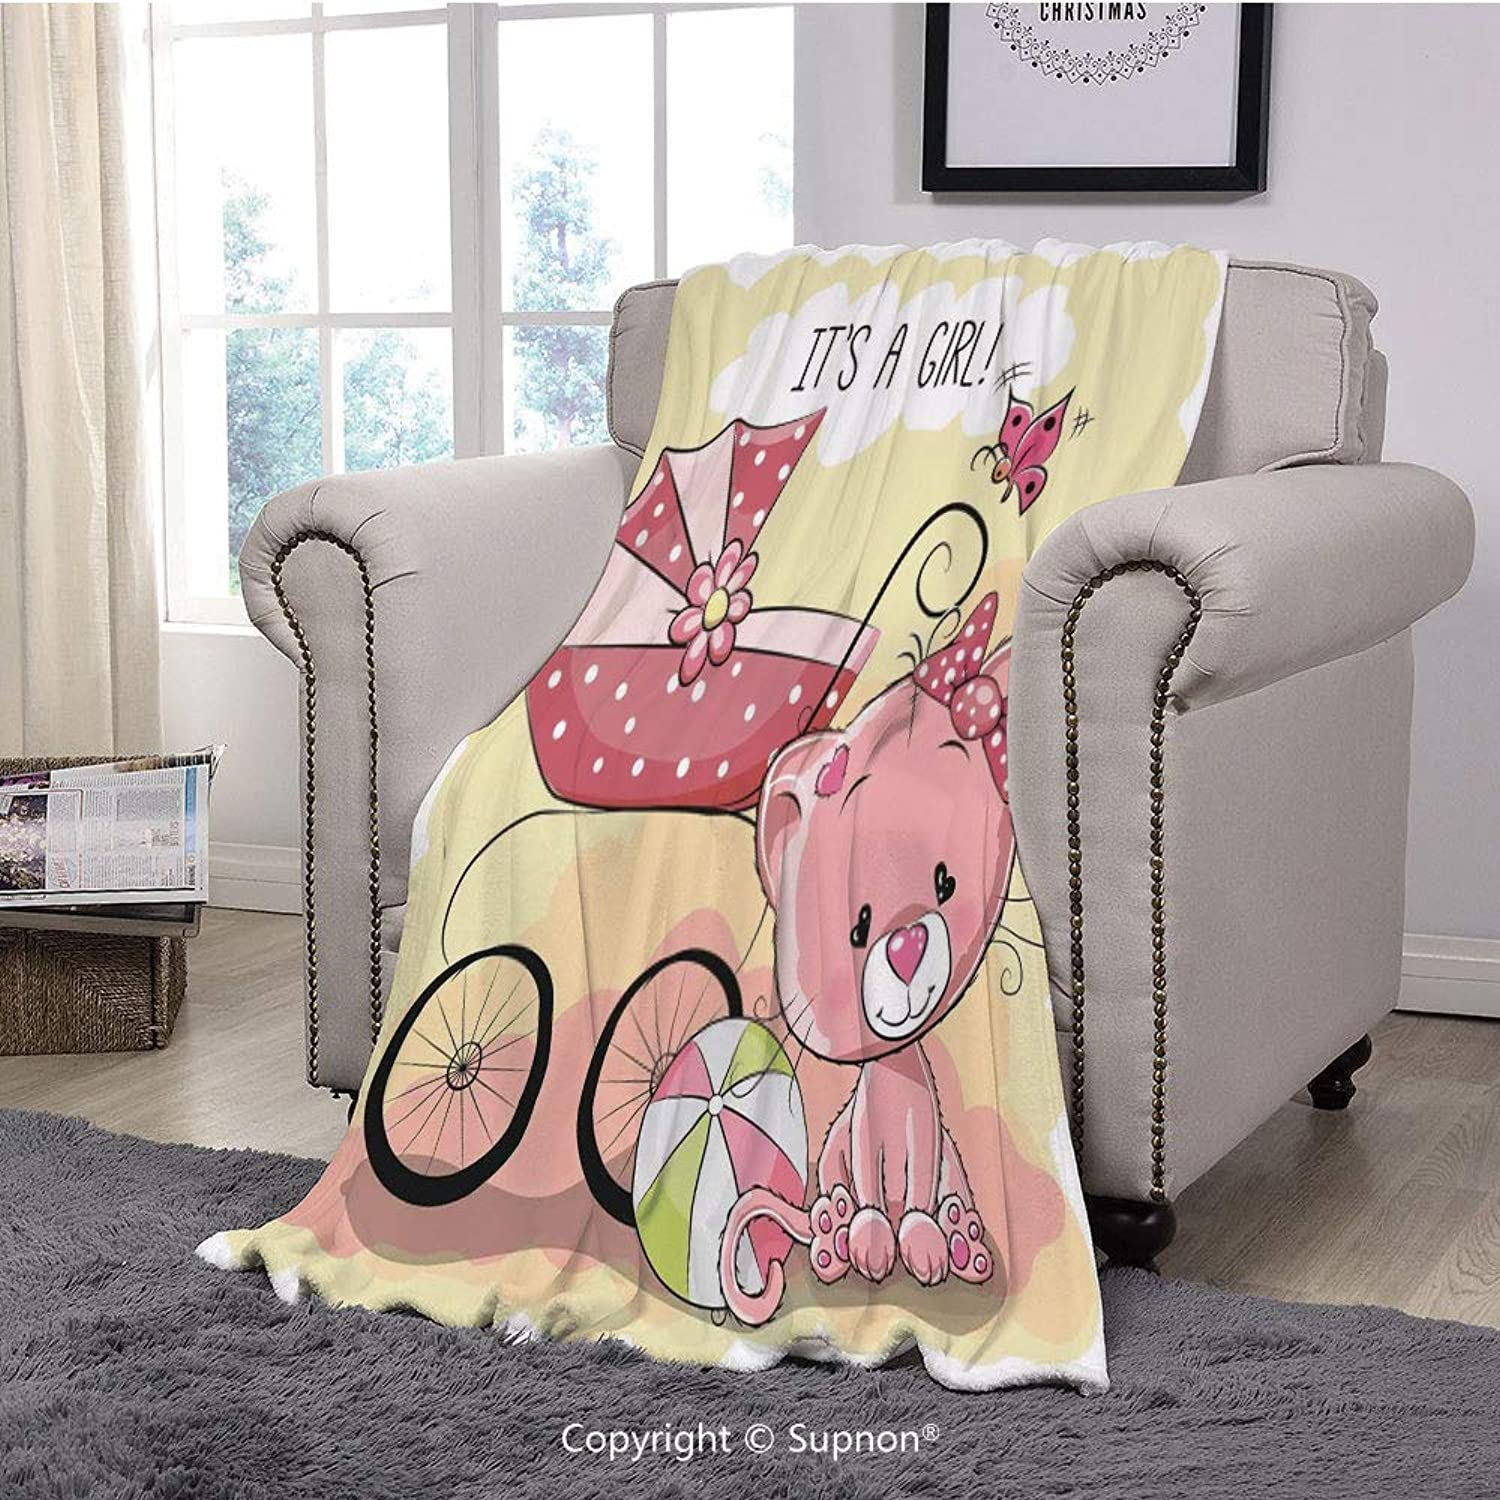 BeeMeng Throw Blanket Super Soft Fuzzy Light Blanket,Gender Reveal Decorations,Cute Kitten Baby Carriage Cat Kids Its A Girl Family,Light Yellow Pink(51  x 51 )